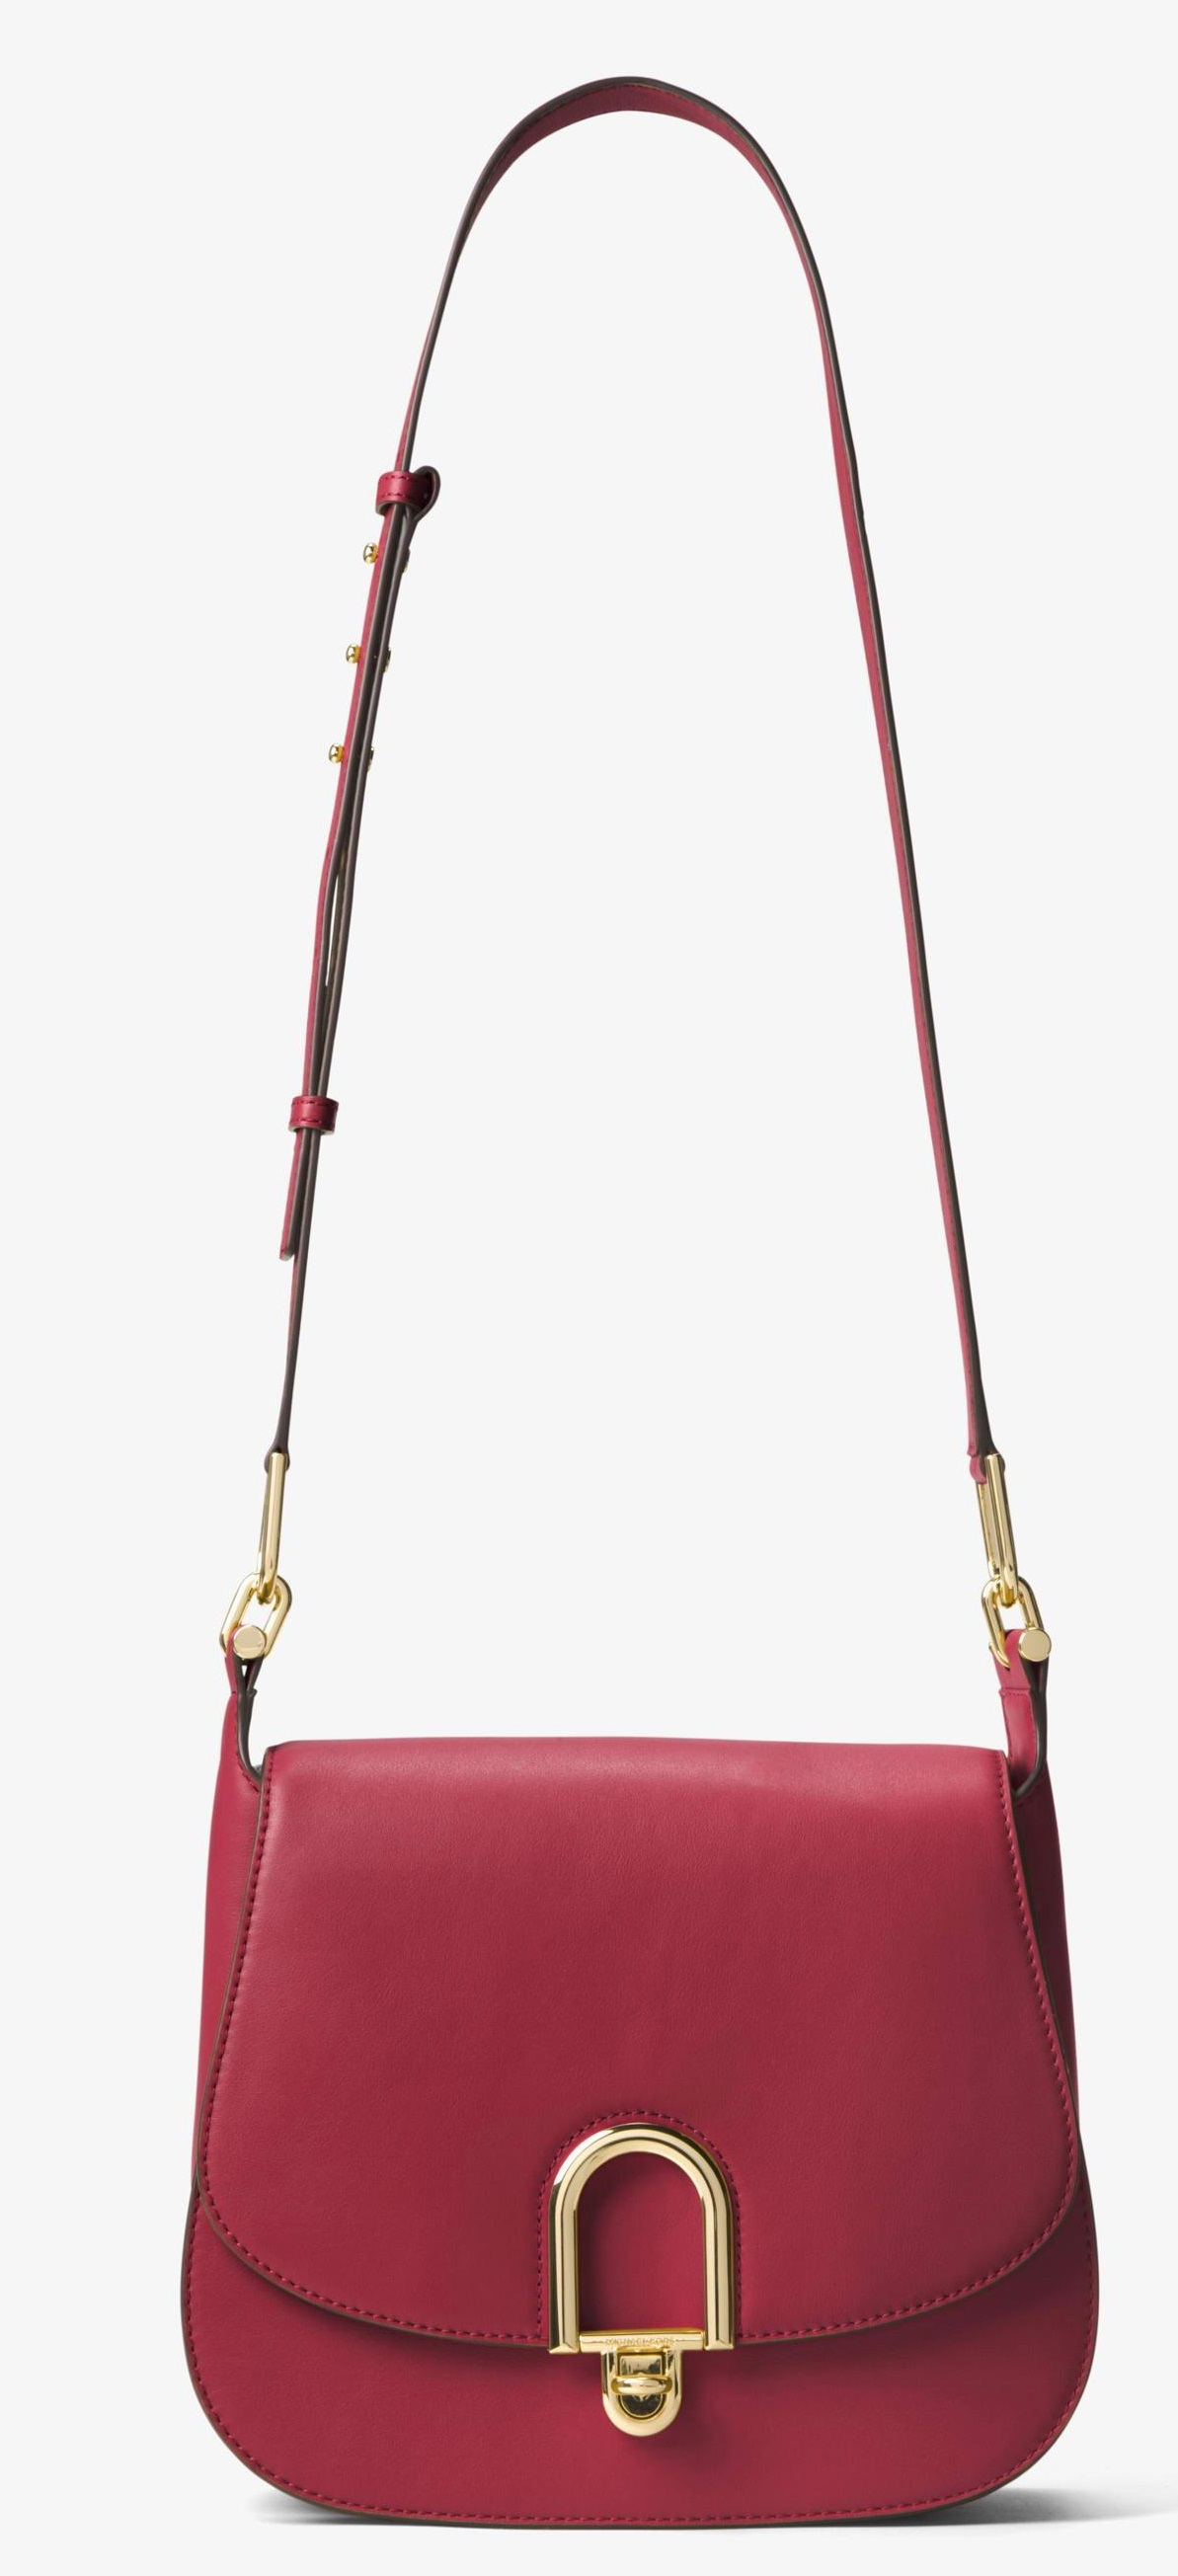 Michael Kors Delfina Large Leather Saddlebag - Burnt Red - 30T7GDZM3L-361